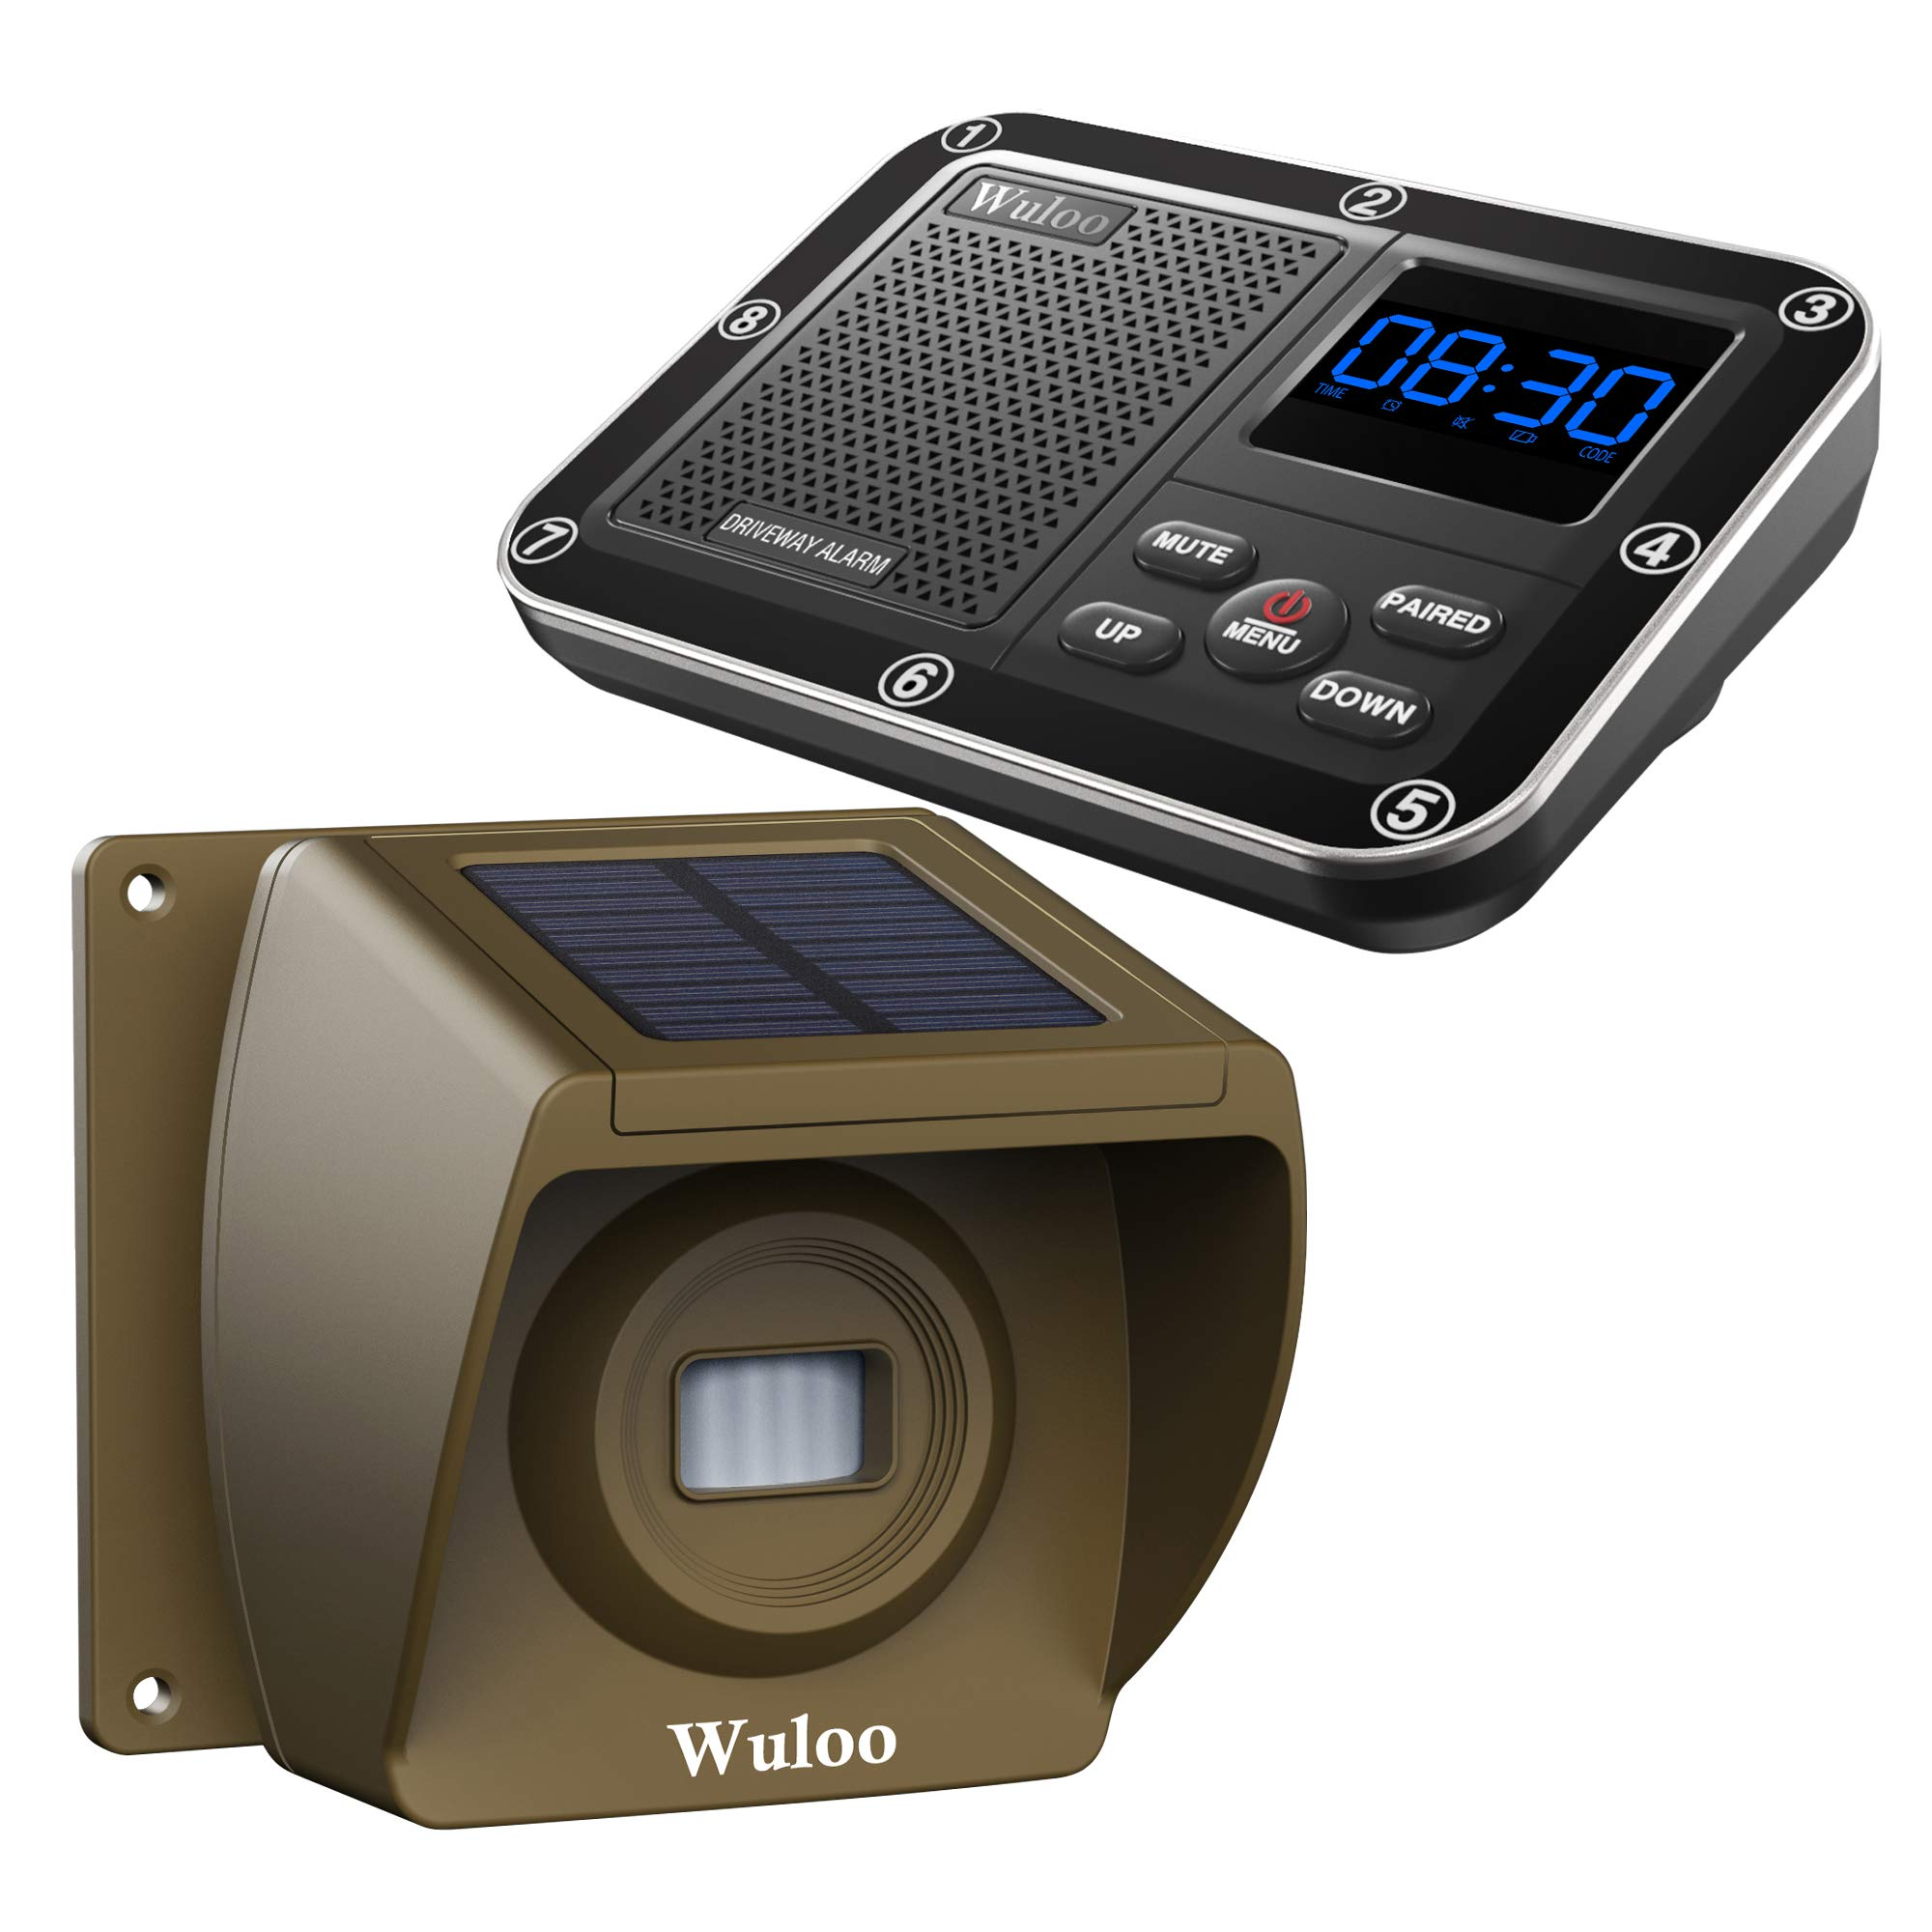 Solar Wireless Driveway Alarm 1800 Feet Long Range Motion Sensor Alert System Driveway Detector for Home with 1800mAh Rechargeable Battery (1&1-Brown) by Wuloo